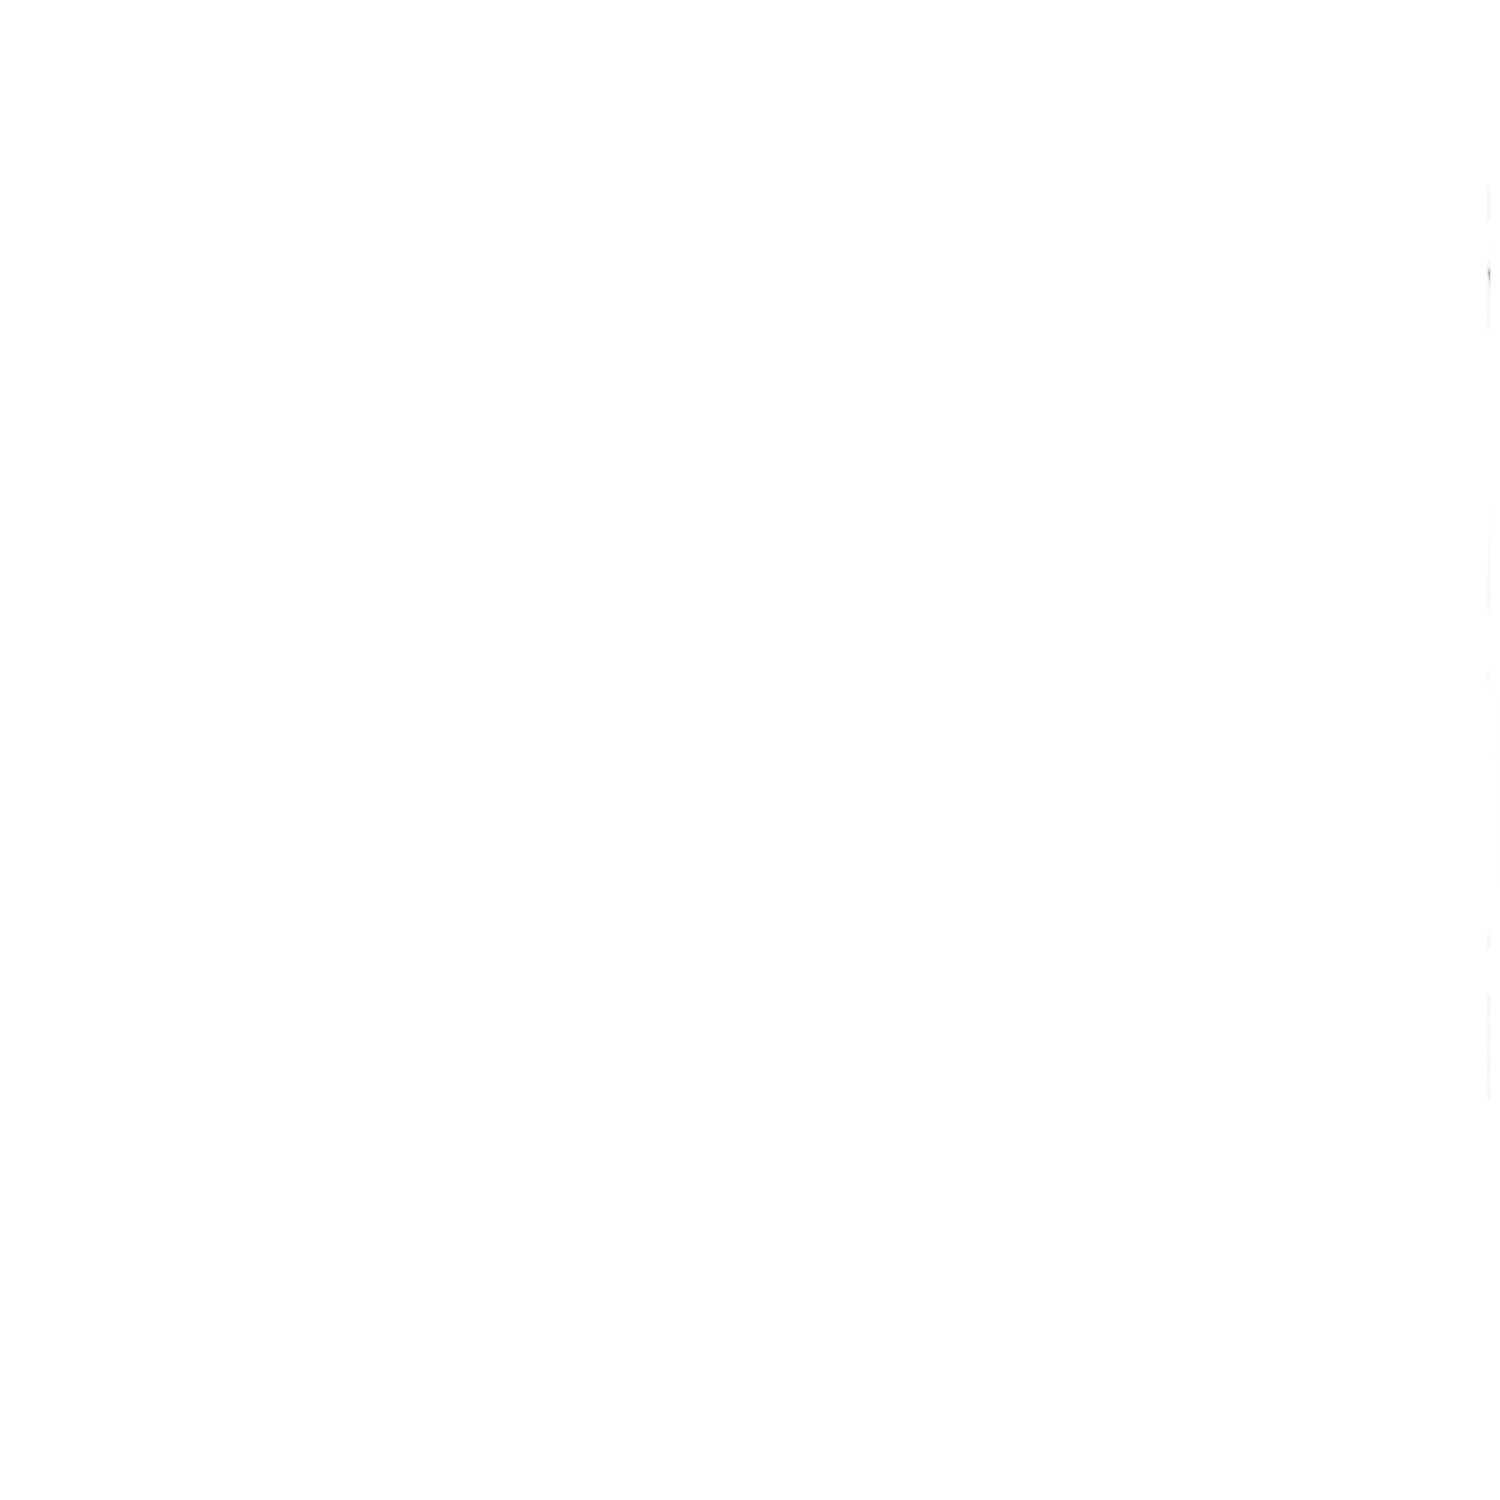 MDA EVENTS